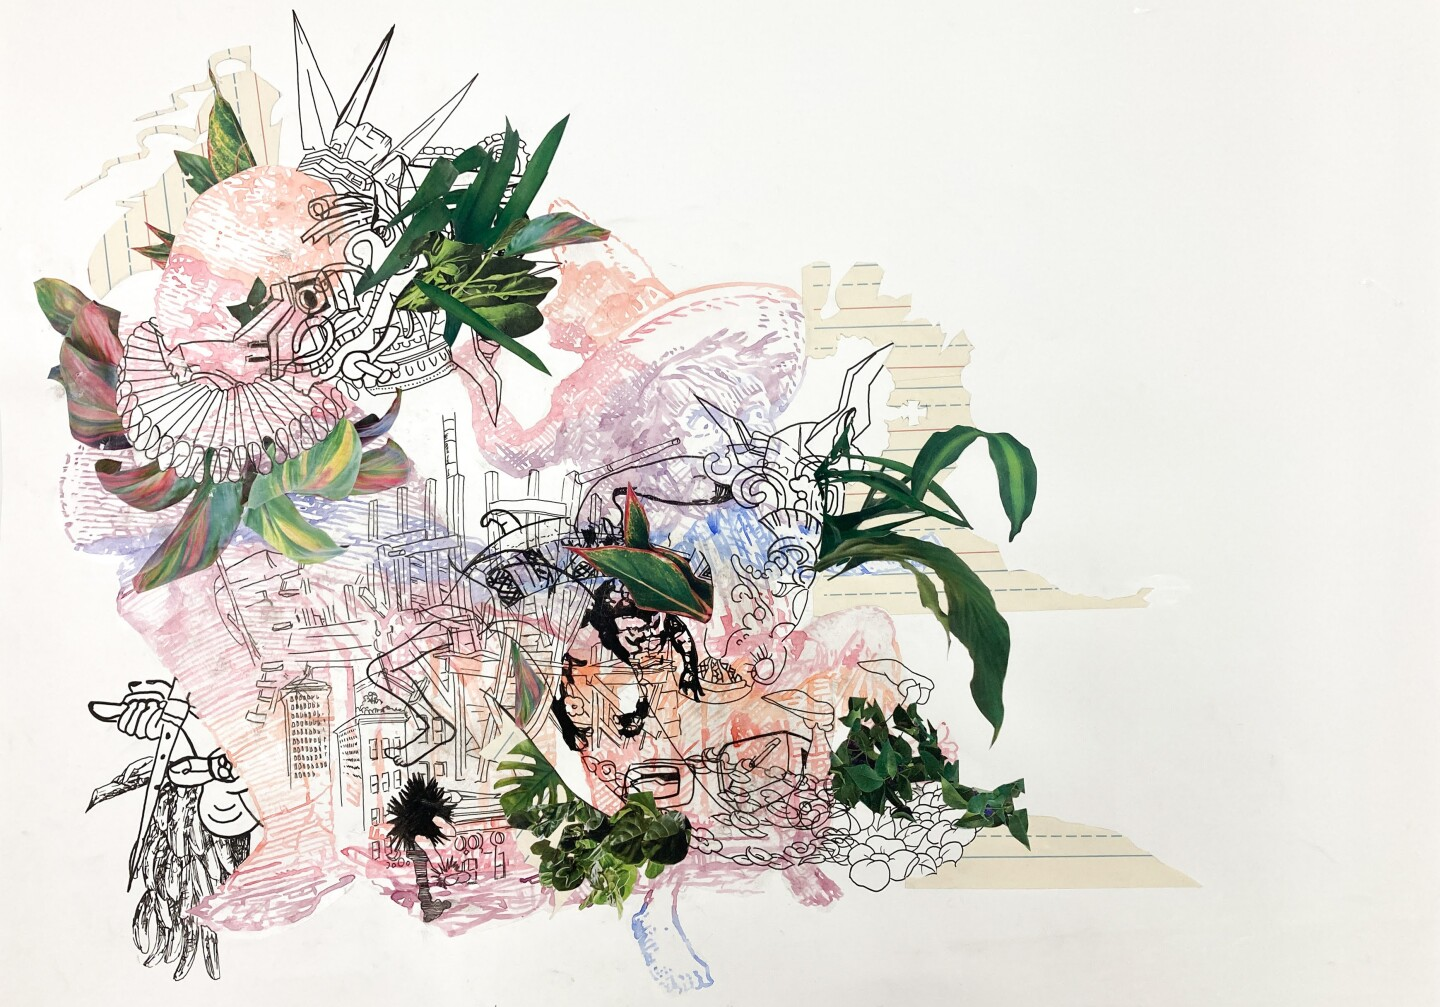 """David Rios Ferreira's """"We would all be together in a sudden strangeness"""" is watercolor, ink and collage on paper."""